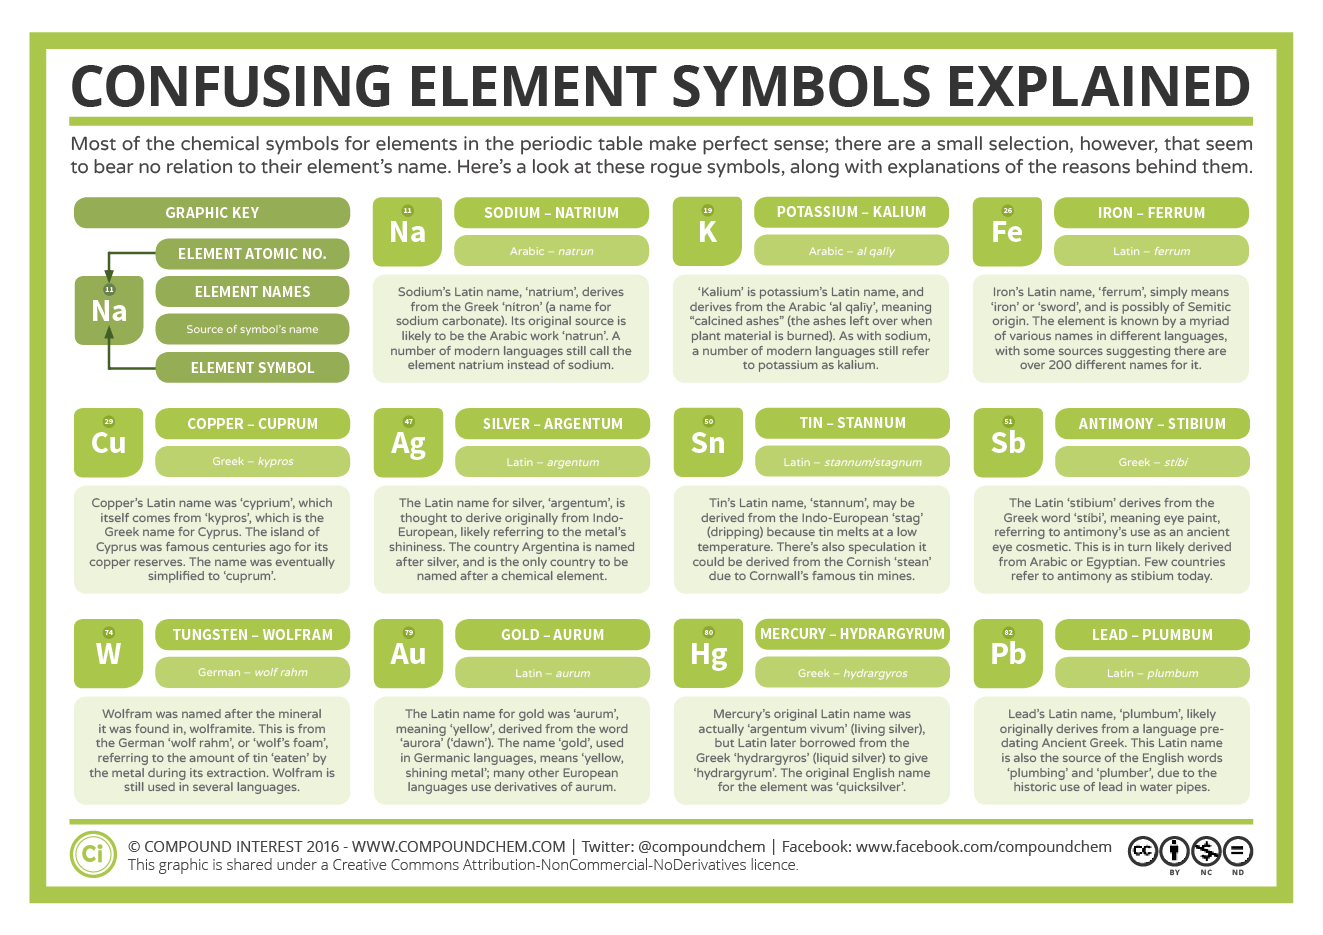 Element Oddities 11 Confusing Chemical Symbols Explained Compound